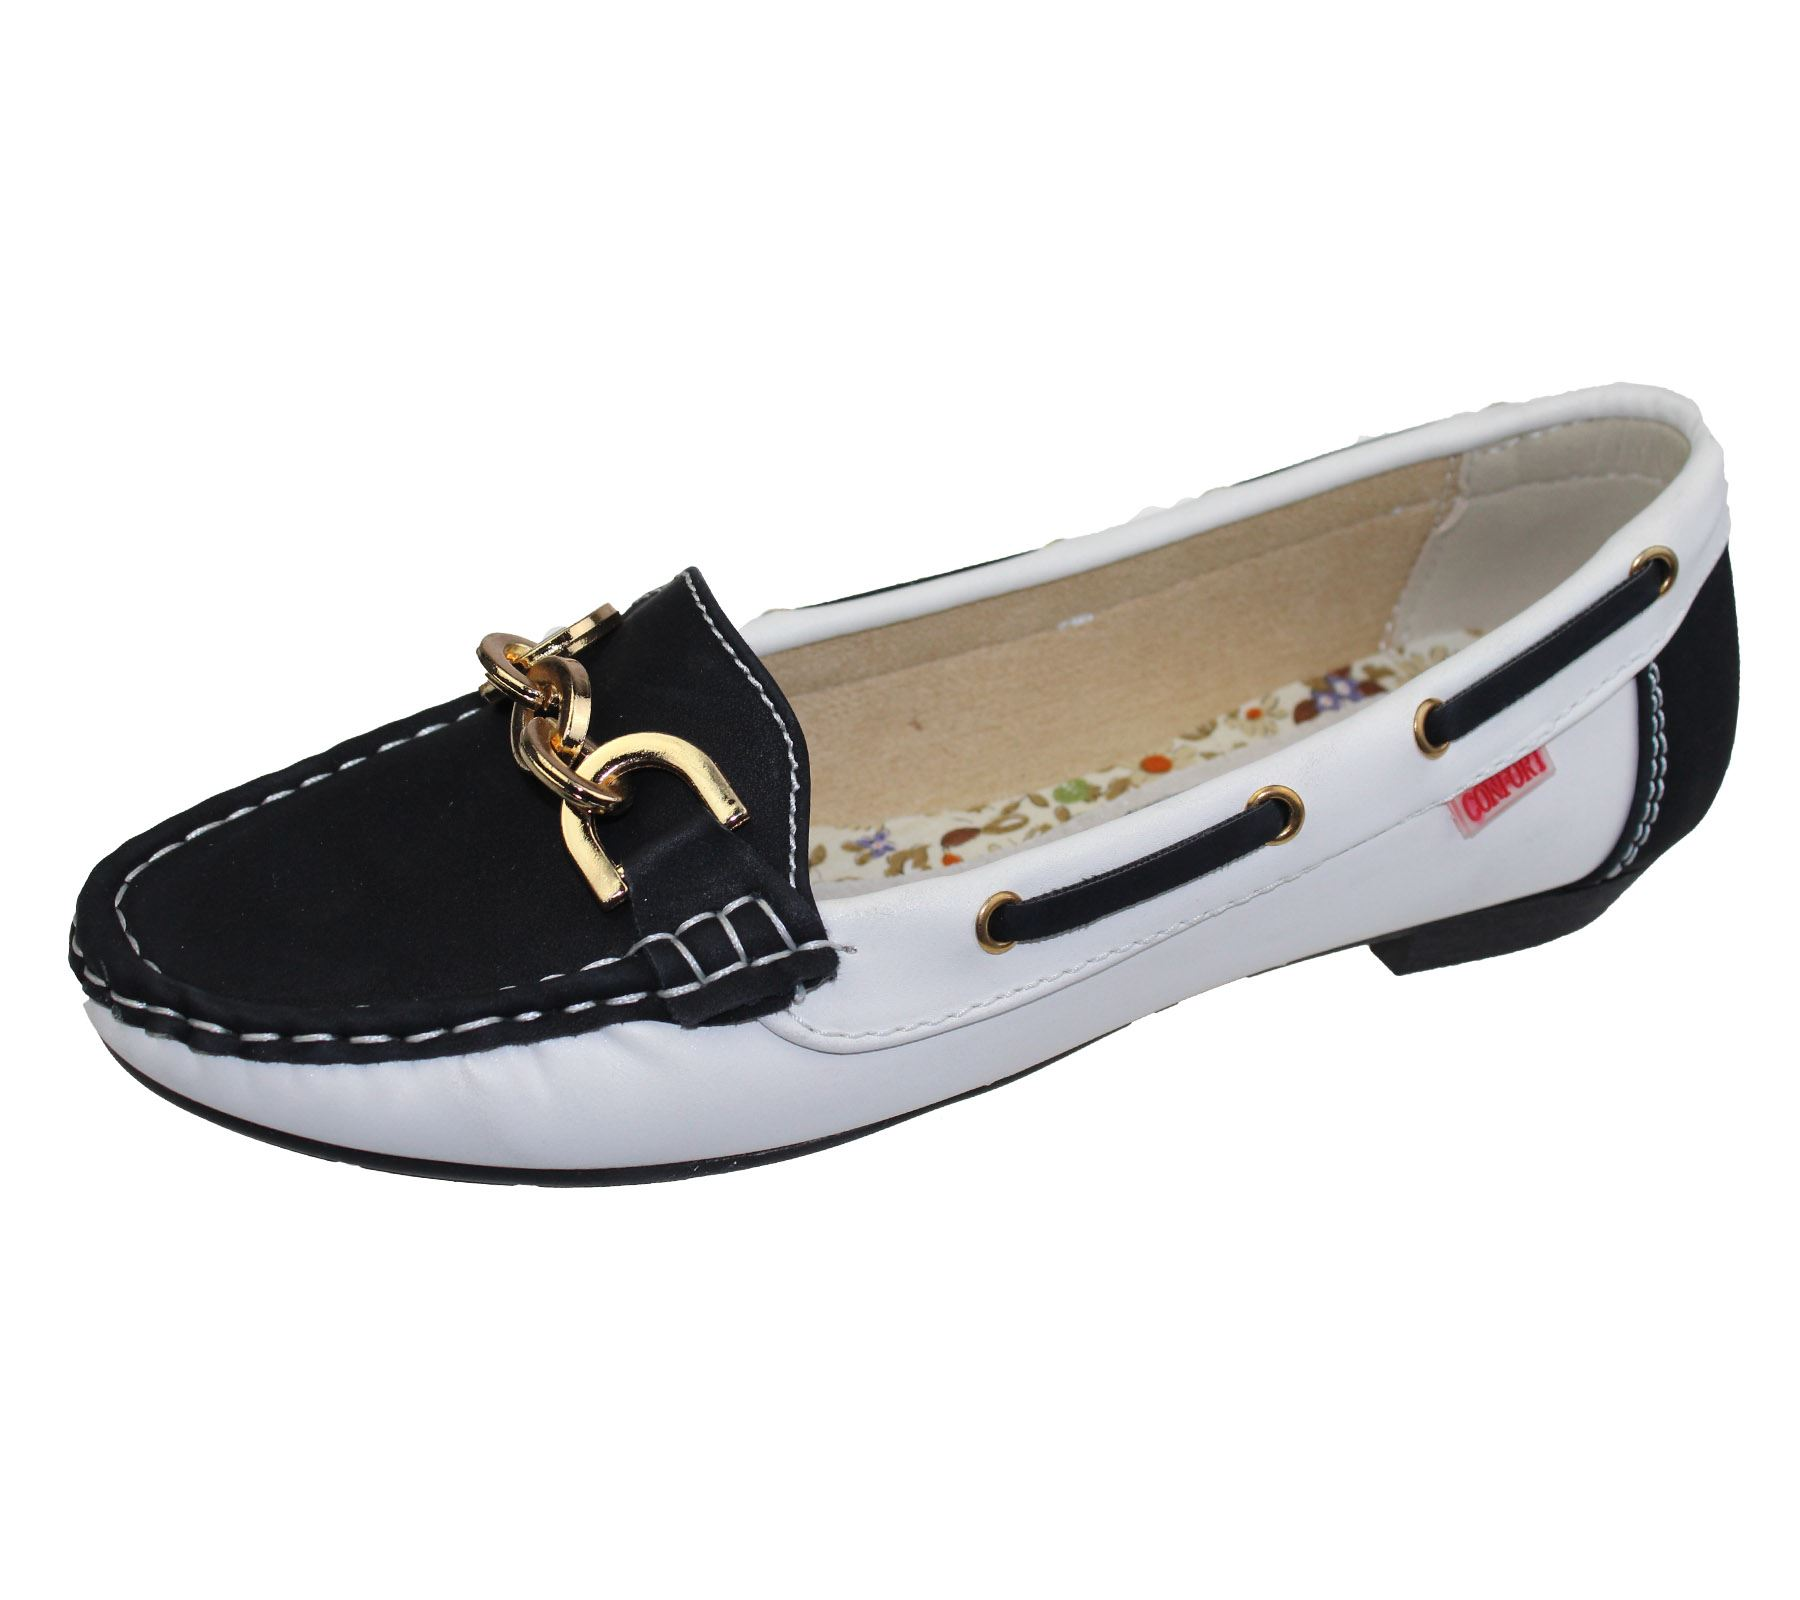 Womens Las Loafers Flat Casual Comfort Office Work